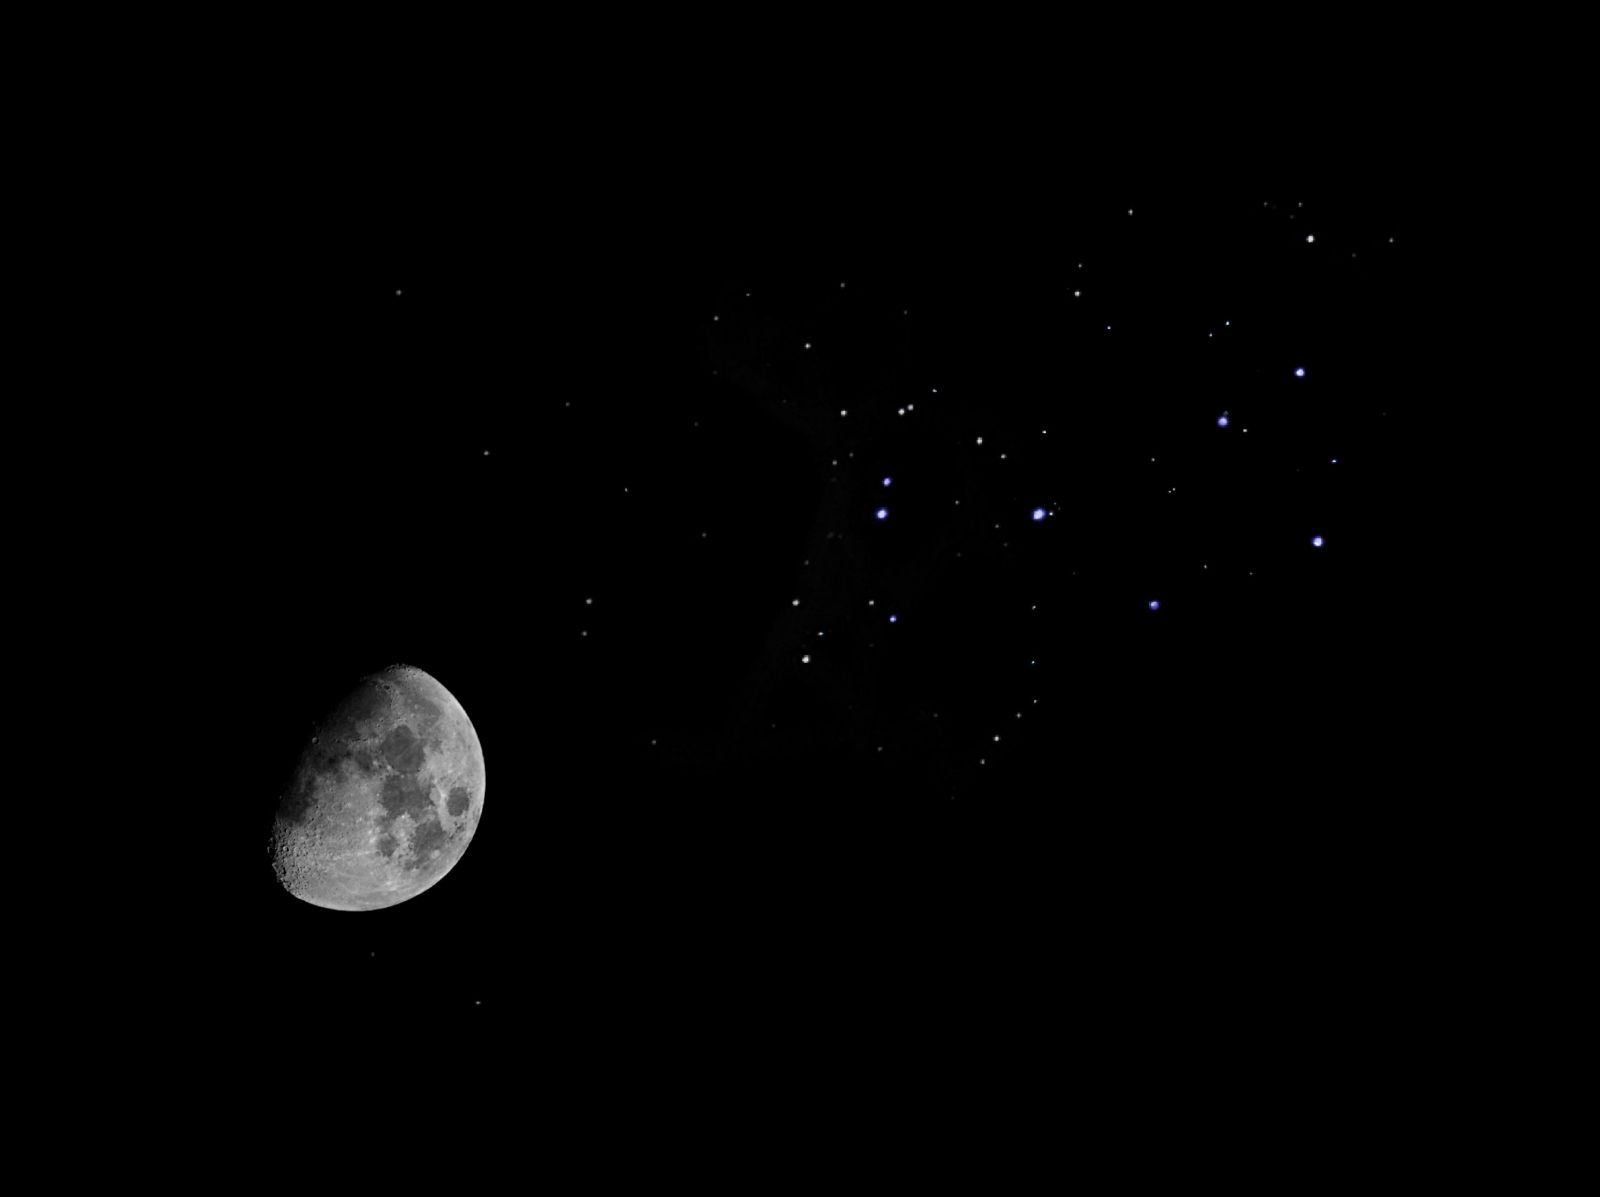 Moon and M45